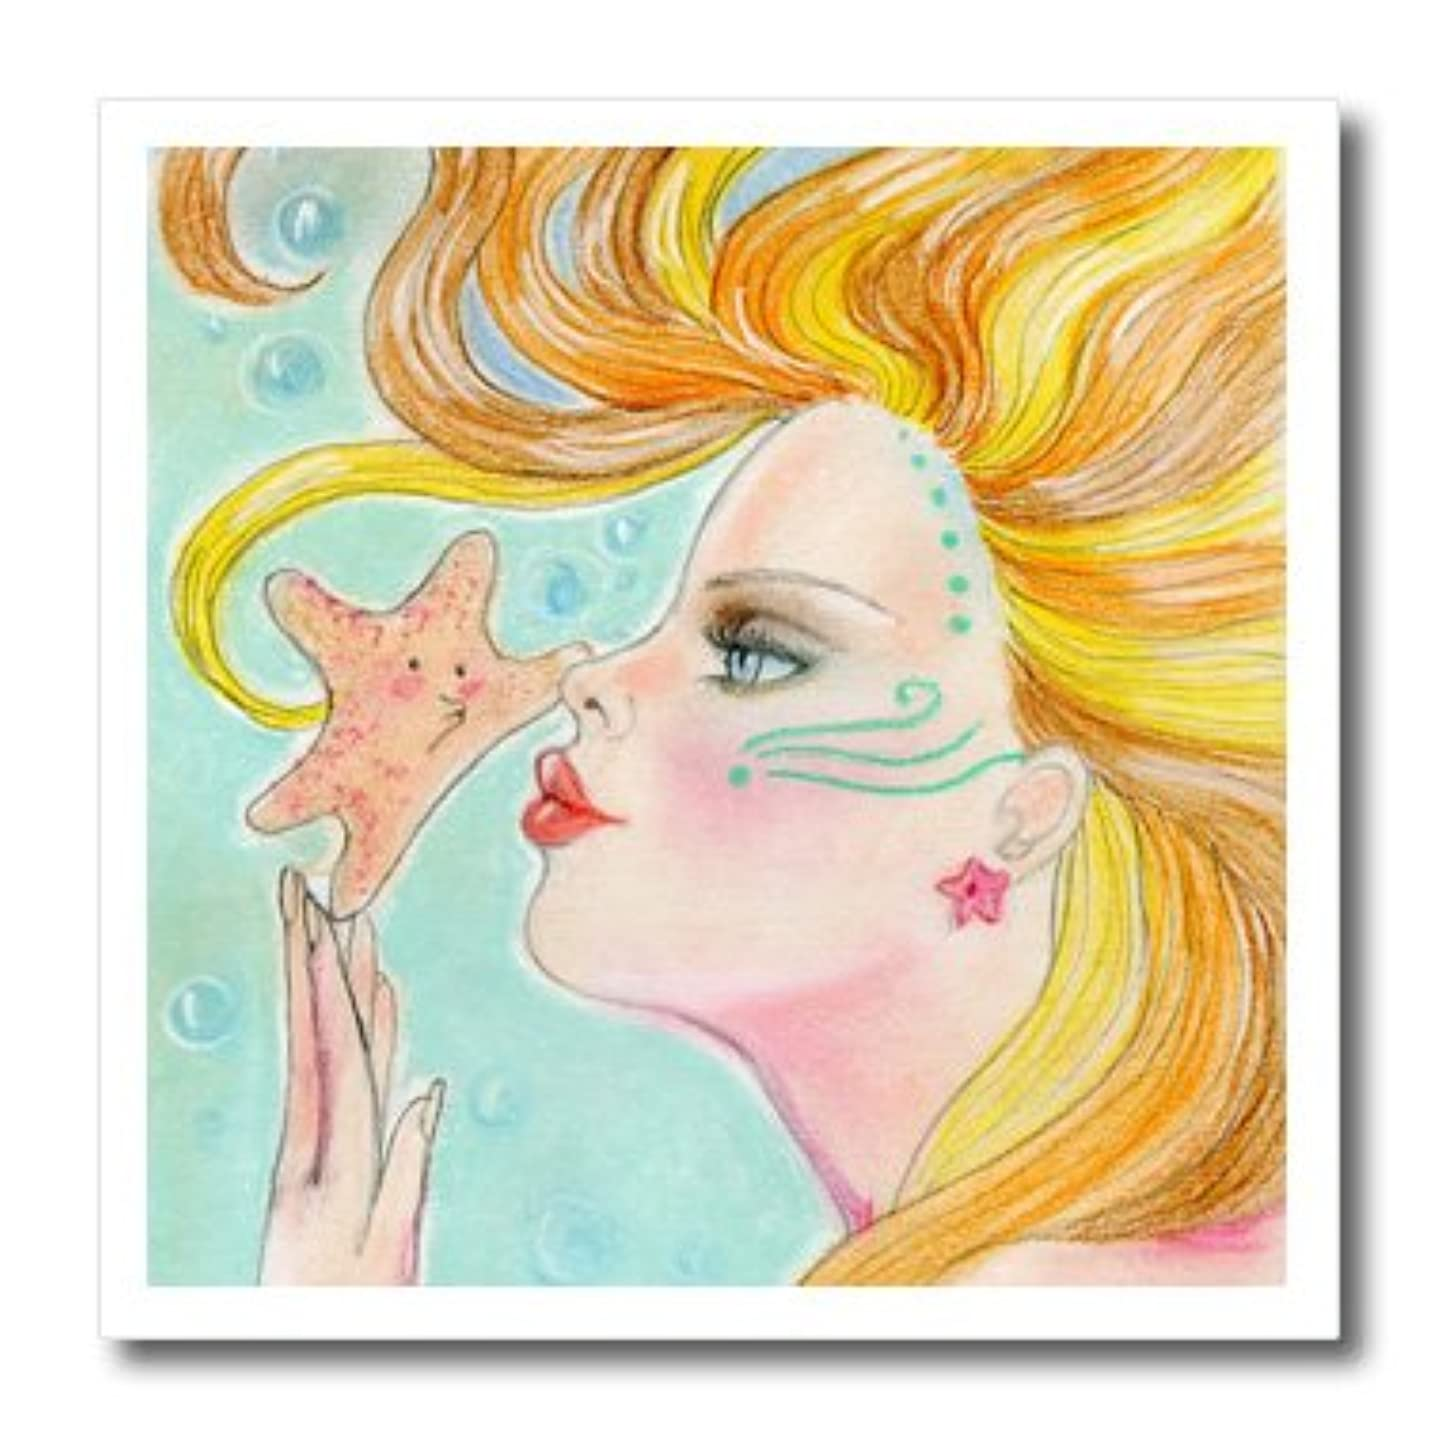 3dRose ht_78675_1 Soft Pastel Ocean Mermaid with Flowing Hair Gets Kiss from Sweet Starfish-Iron on Heat Transfer for Material, 8 by 8-Inch, White